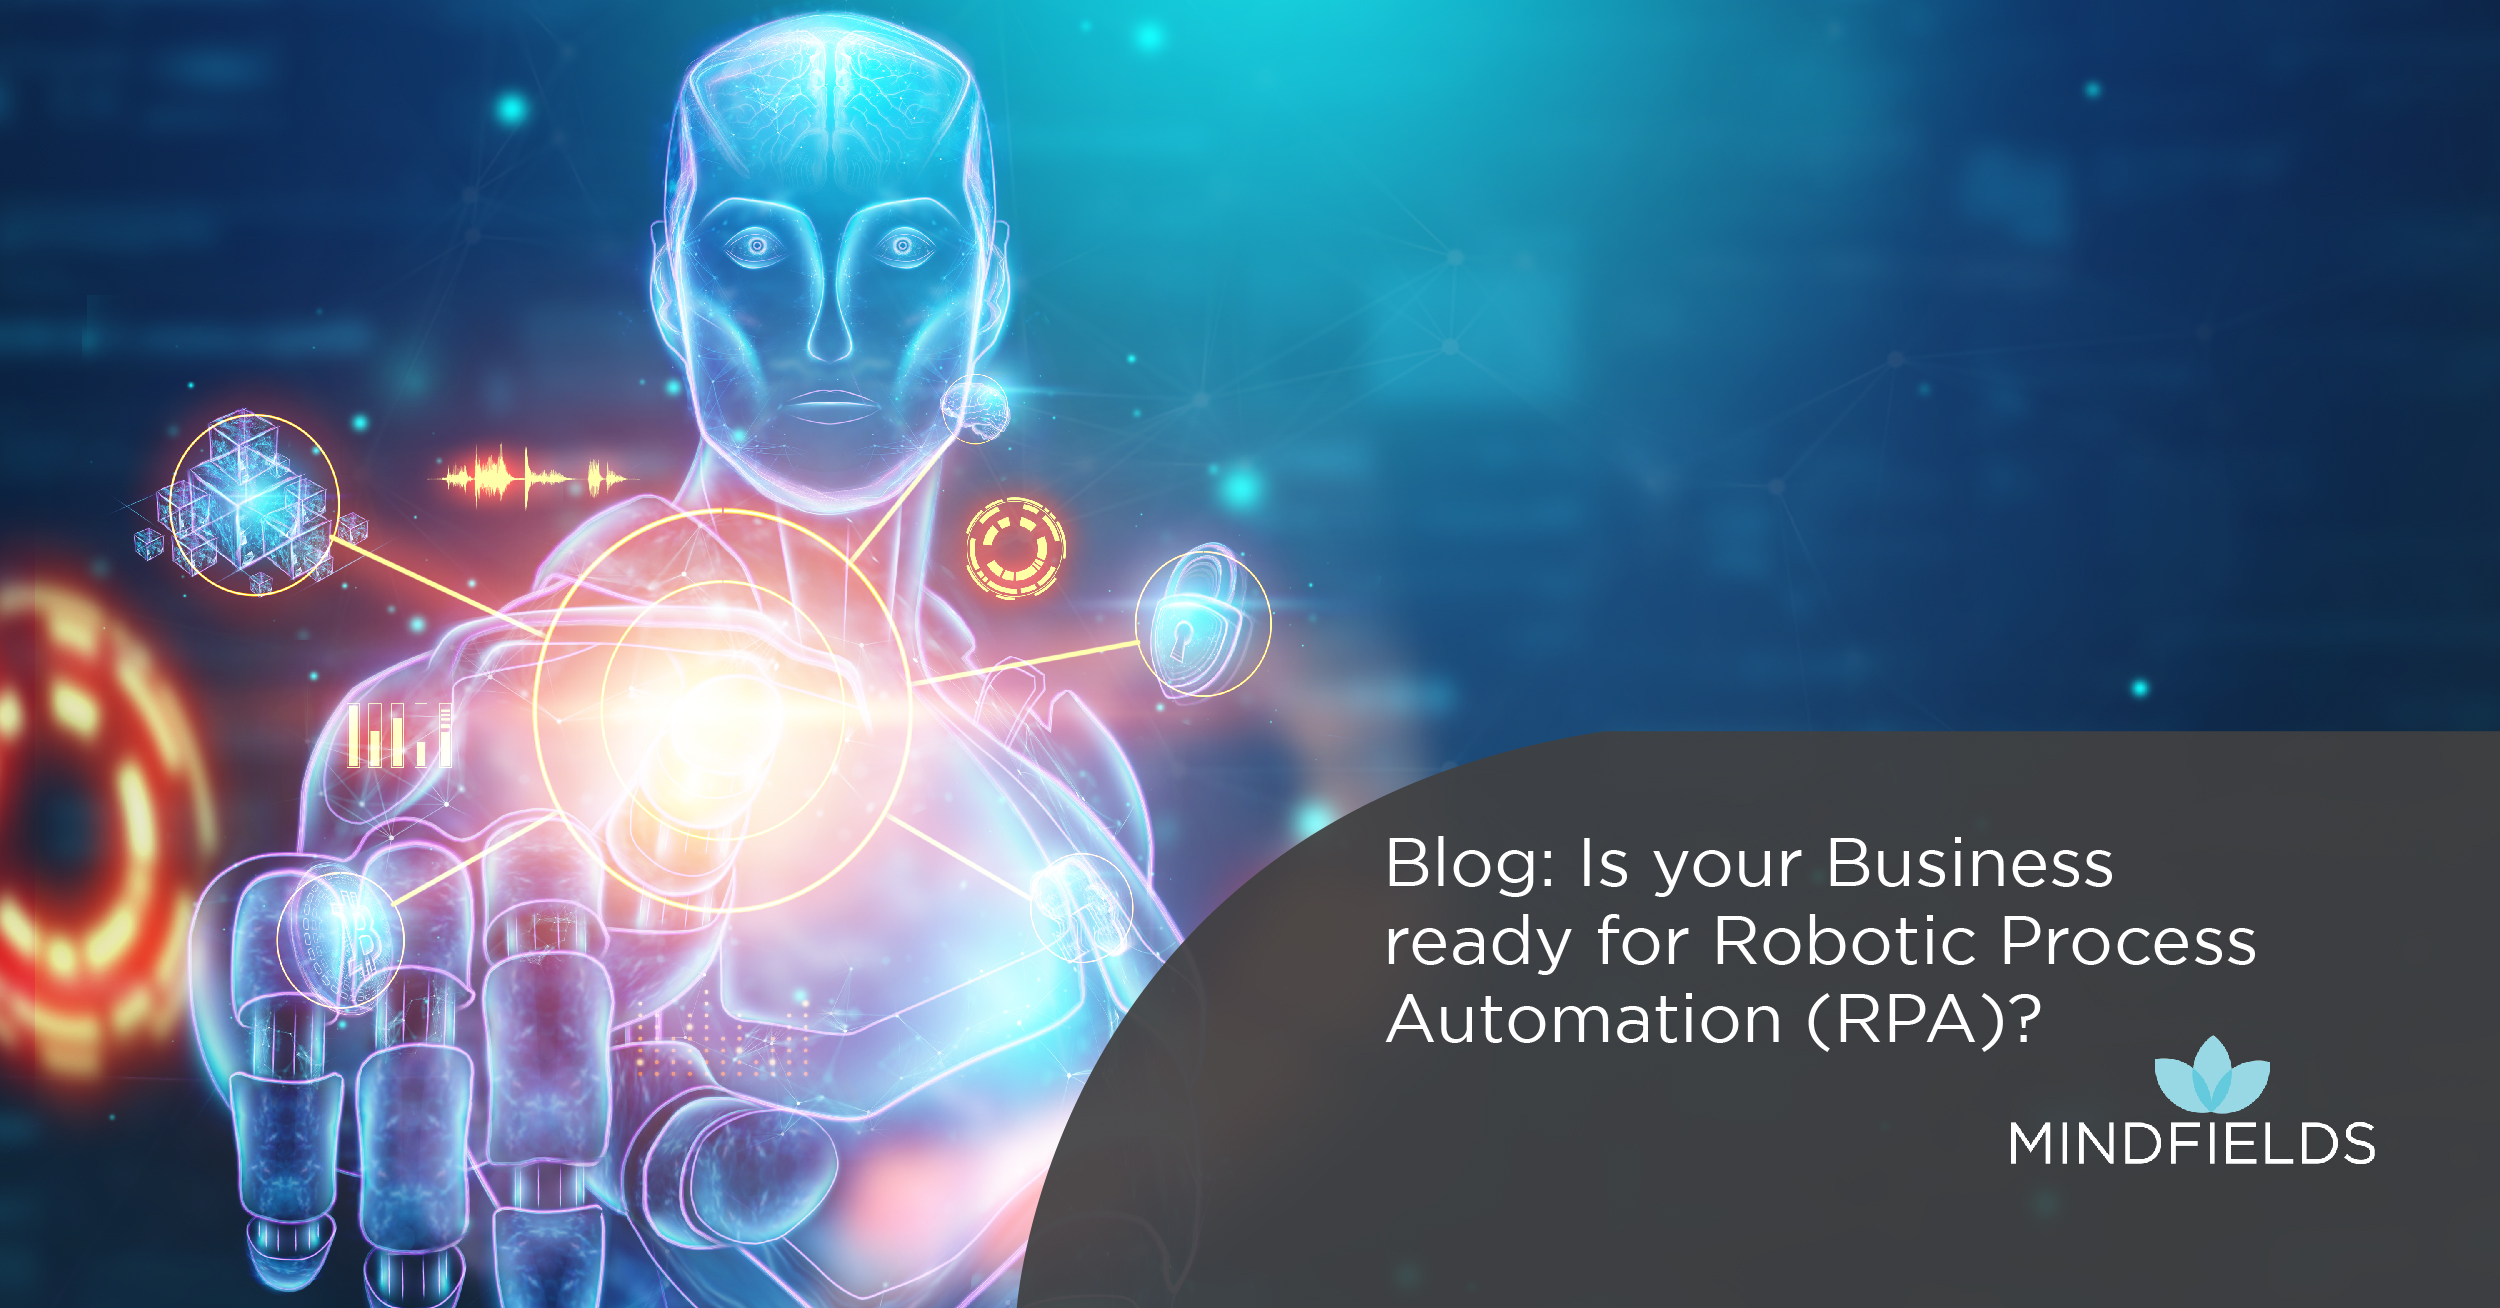 Is your Business ready for Robotic Process Automation (RPA)?